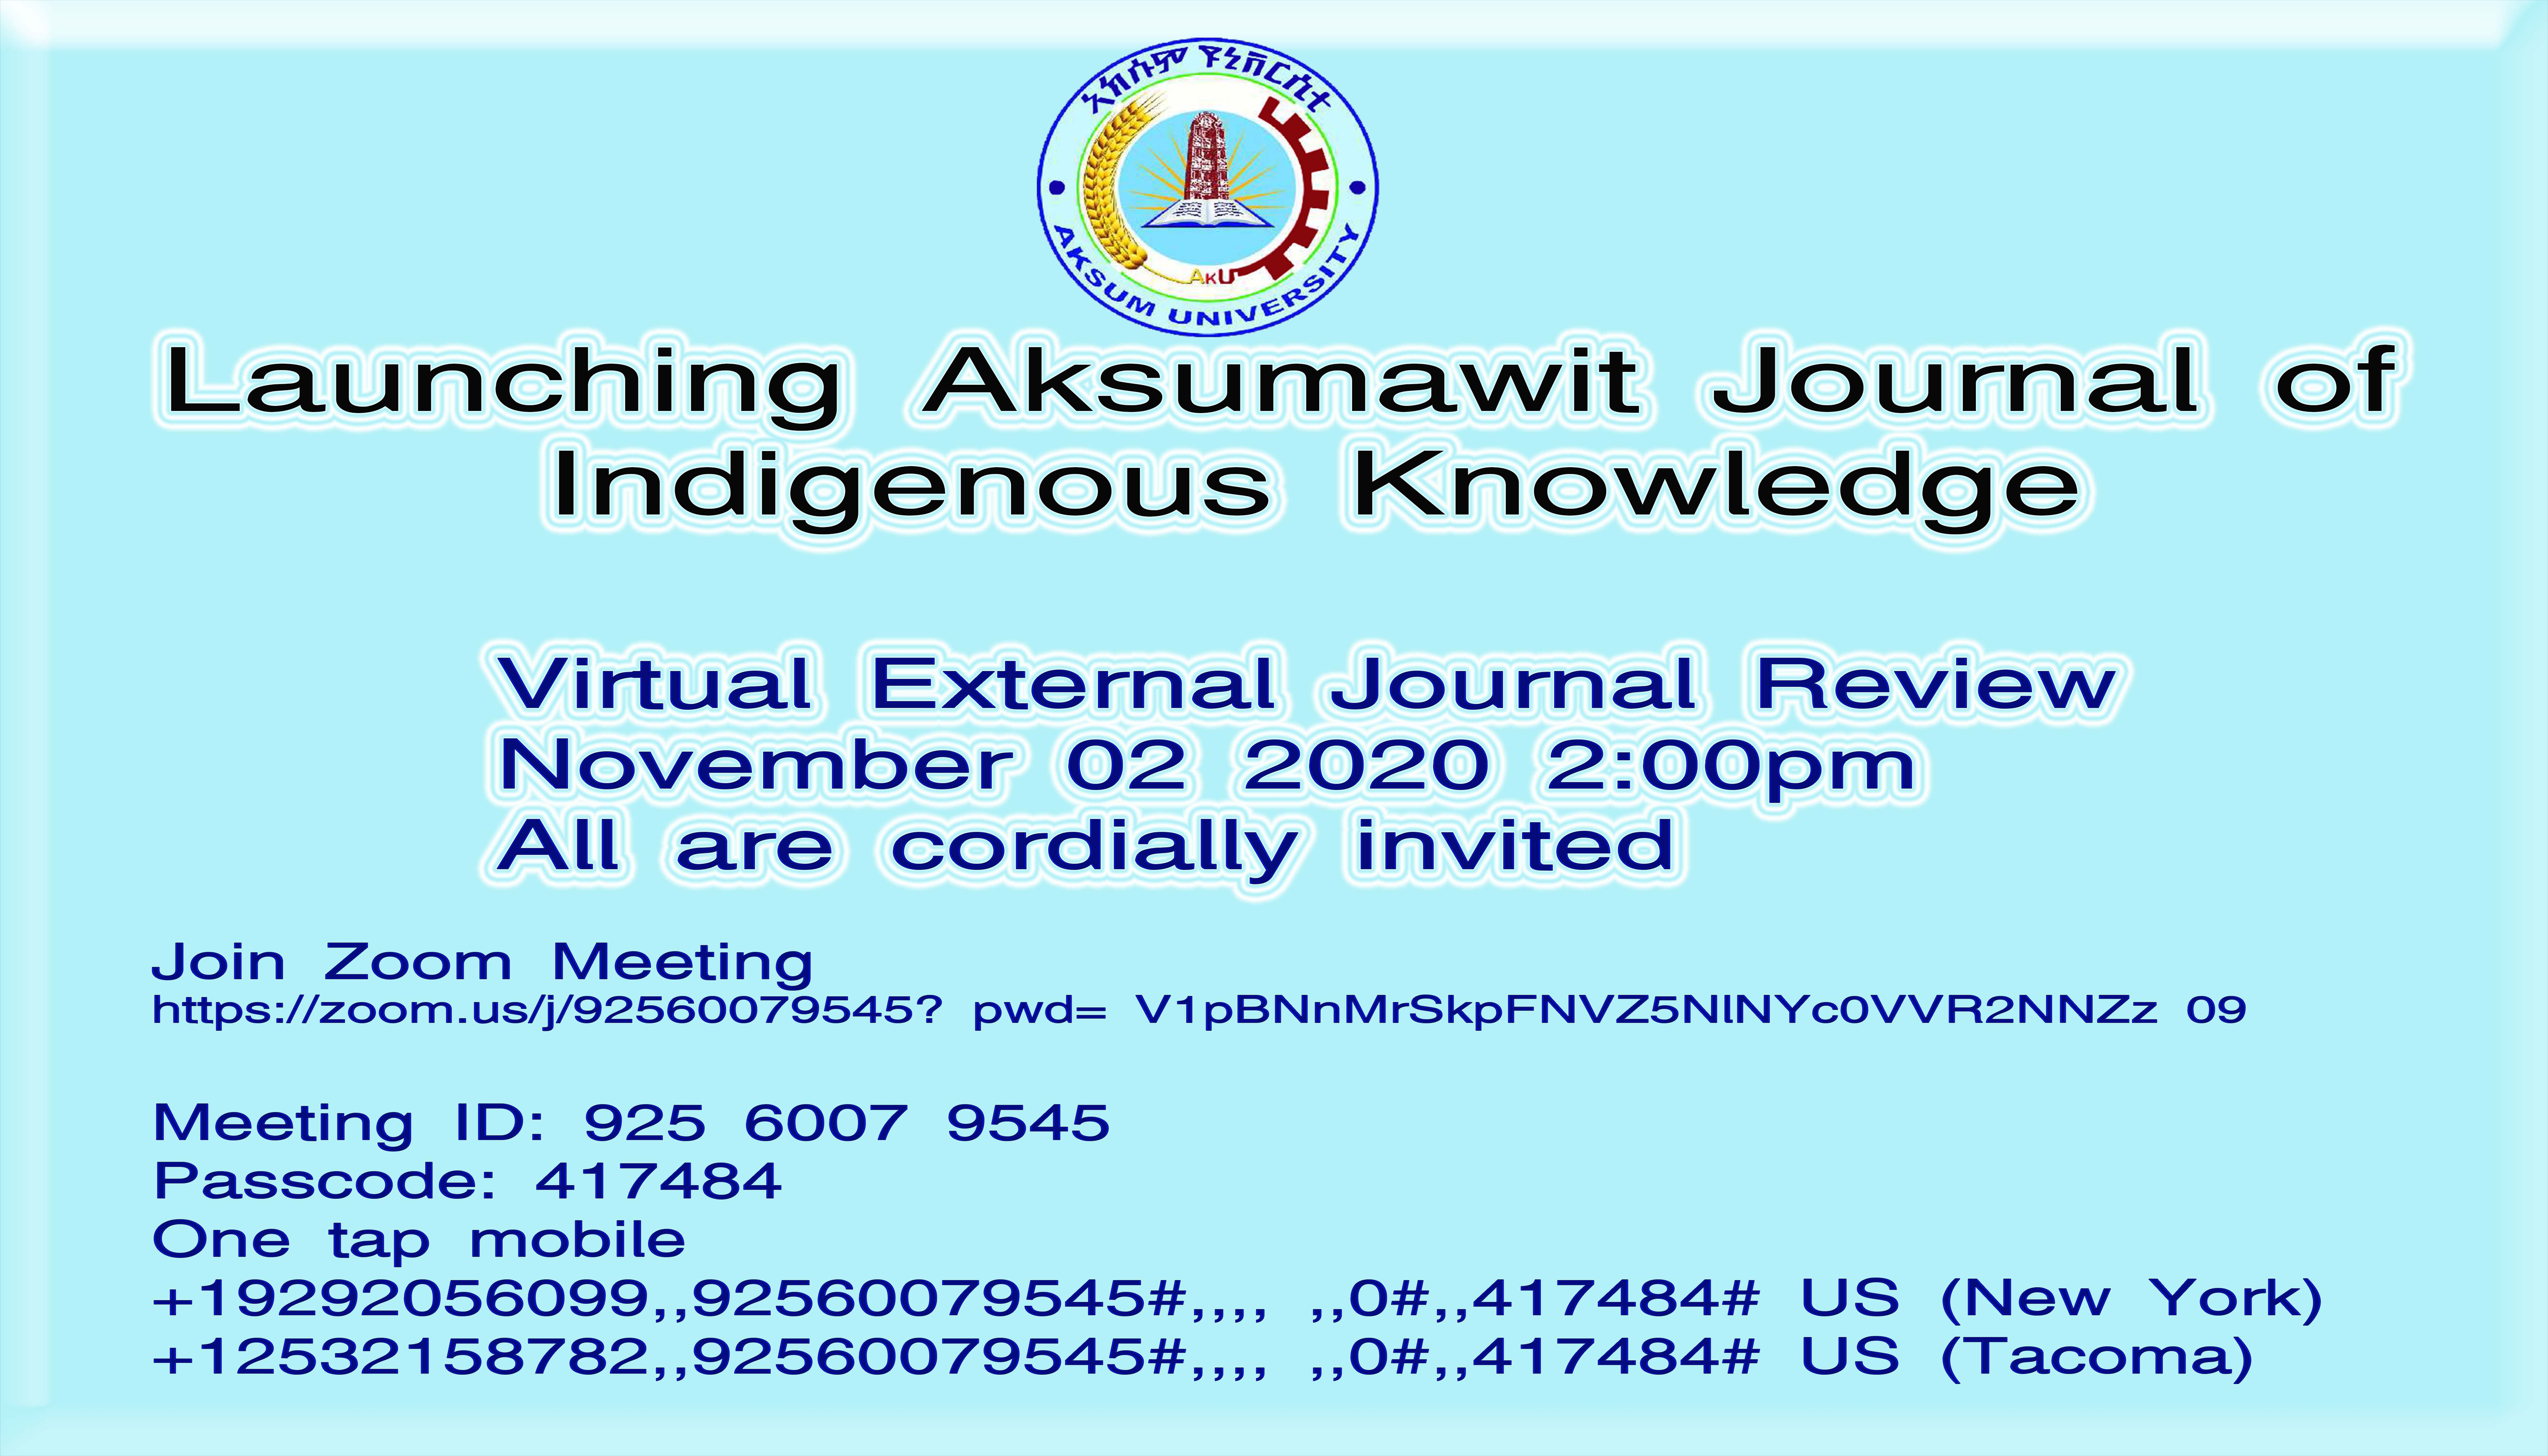 Launching Aksumawit Journal of Indigenous Knowledge